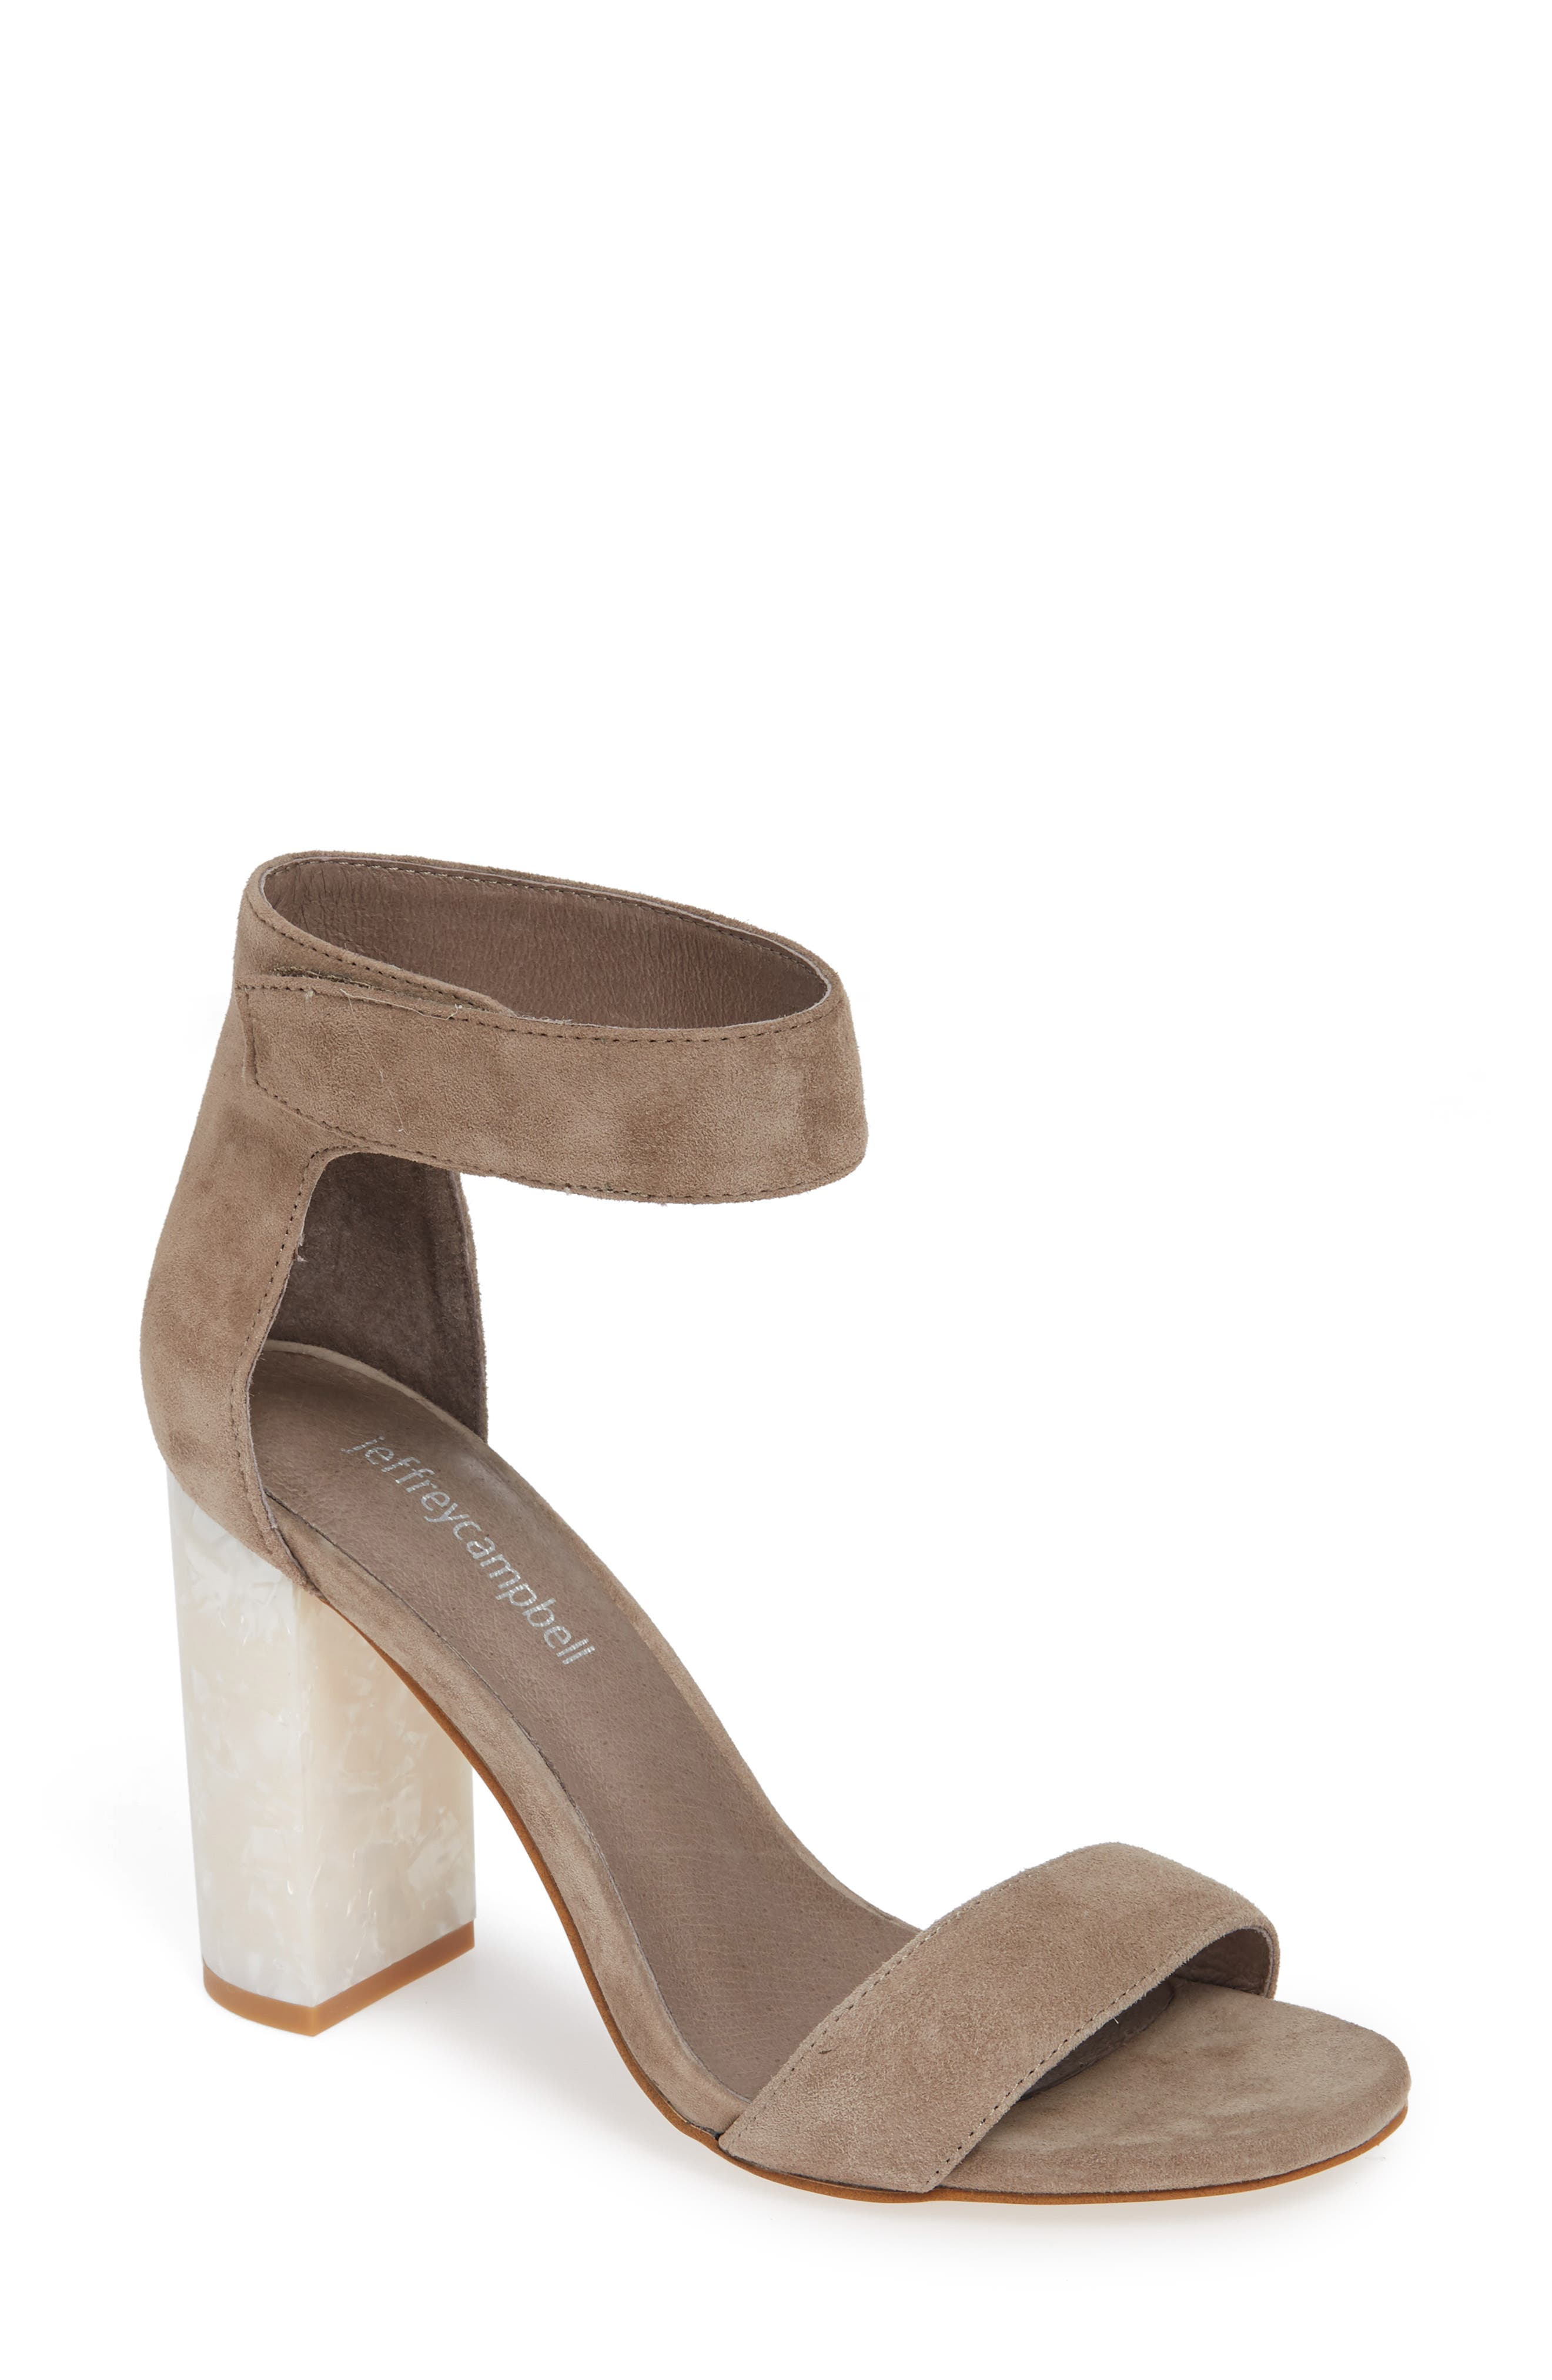 Lindsay Statement Heel Sandal,                             Main thumbnail 1, color,                             TAUPE SUEDE